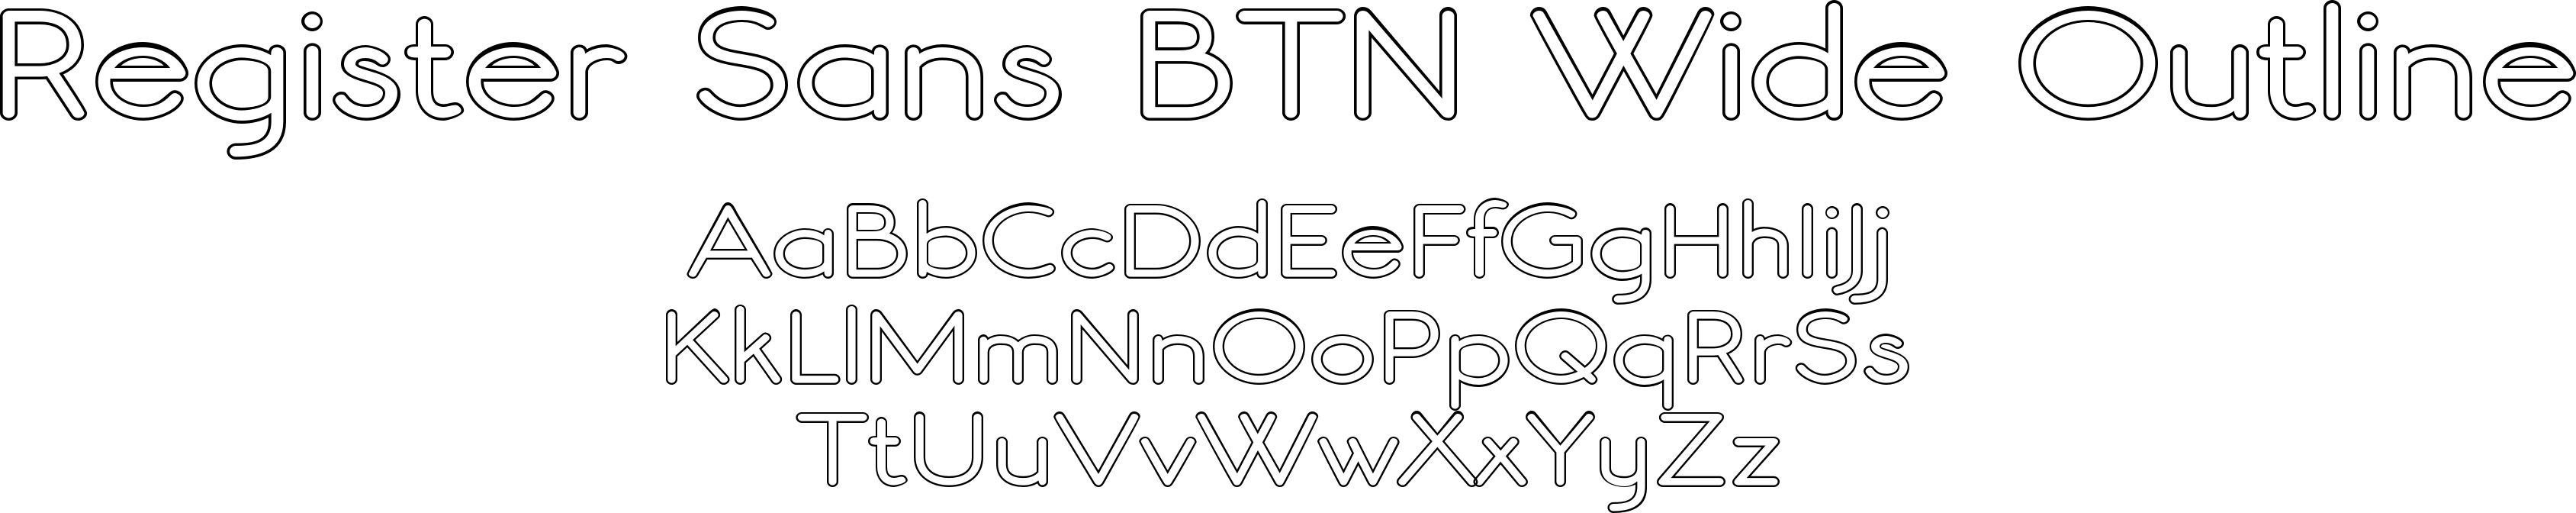 Register Sans BTN Wide Outline